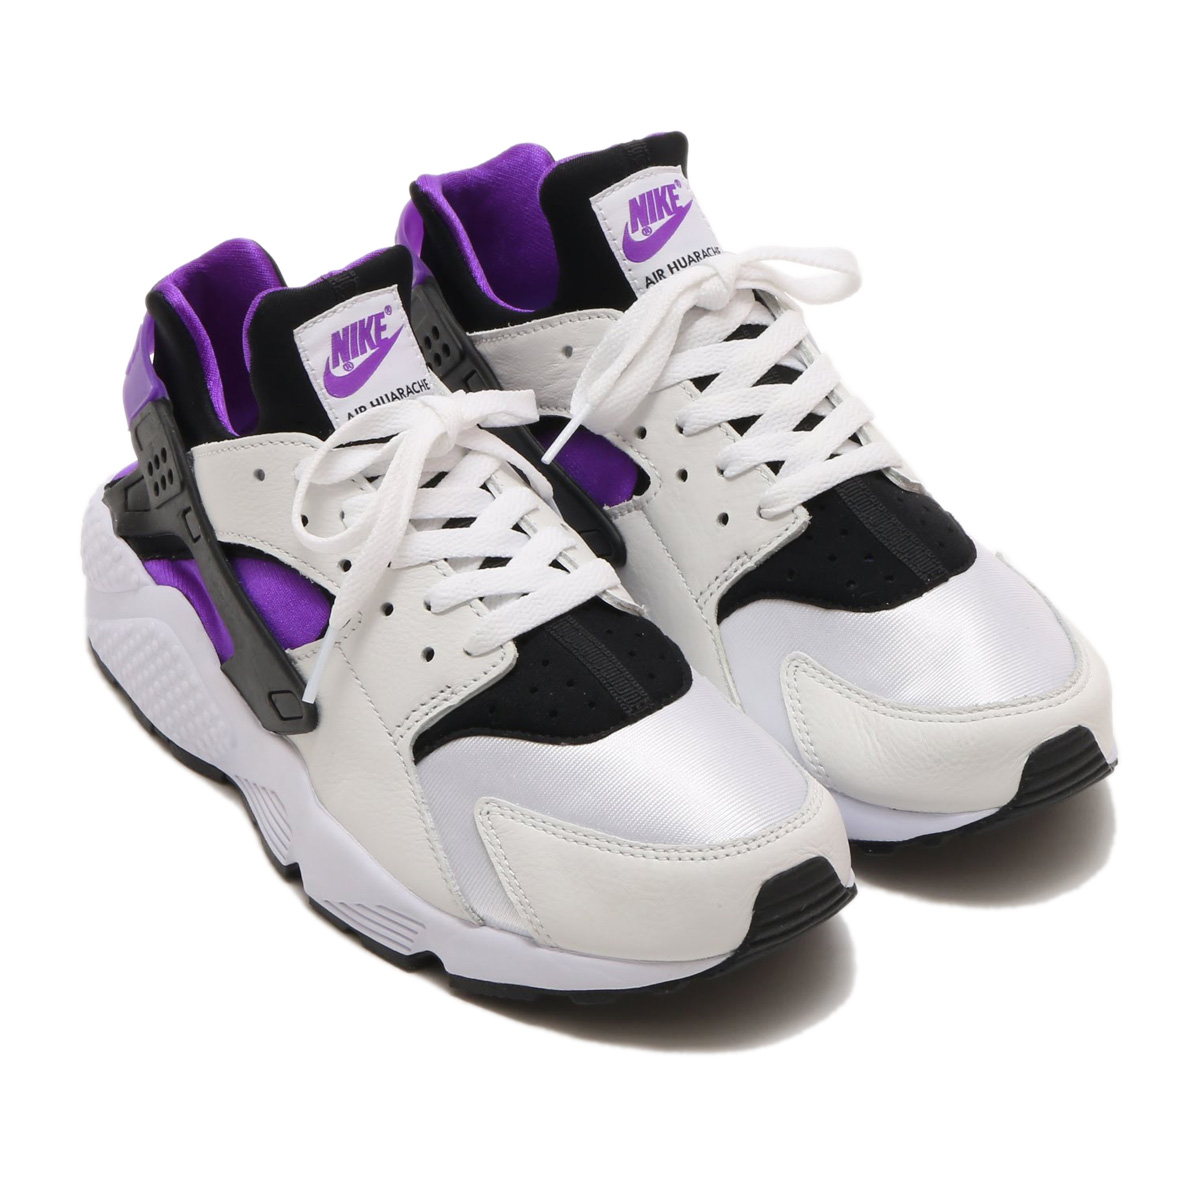 9c7075b043c0f8 NIKE AIR HUARACHE RUN  91 QS (ナイキエアハラチラン 91 QS) (BLACK PURPLE PUNCH-BLACK-WHITE)  18SP-S